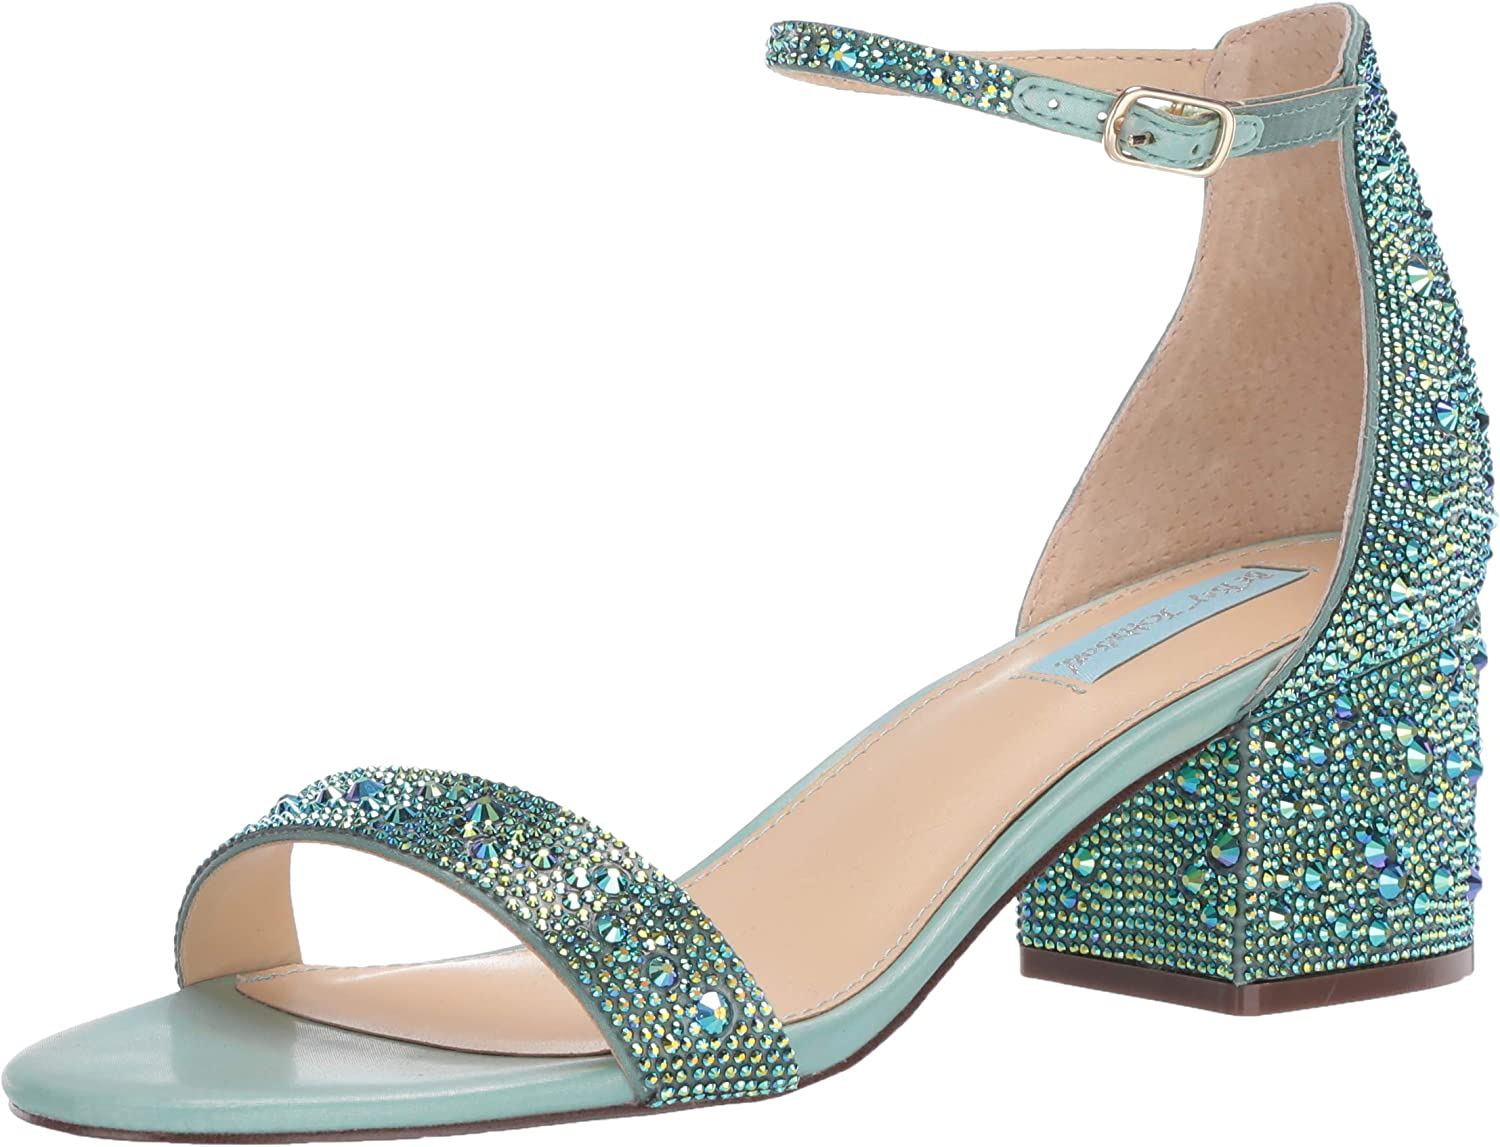 Blue by Easy-to-use Betsey Johnson Sb-Raine Women's Sandal Limited time for free shipping Dress